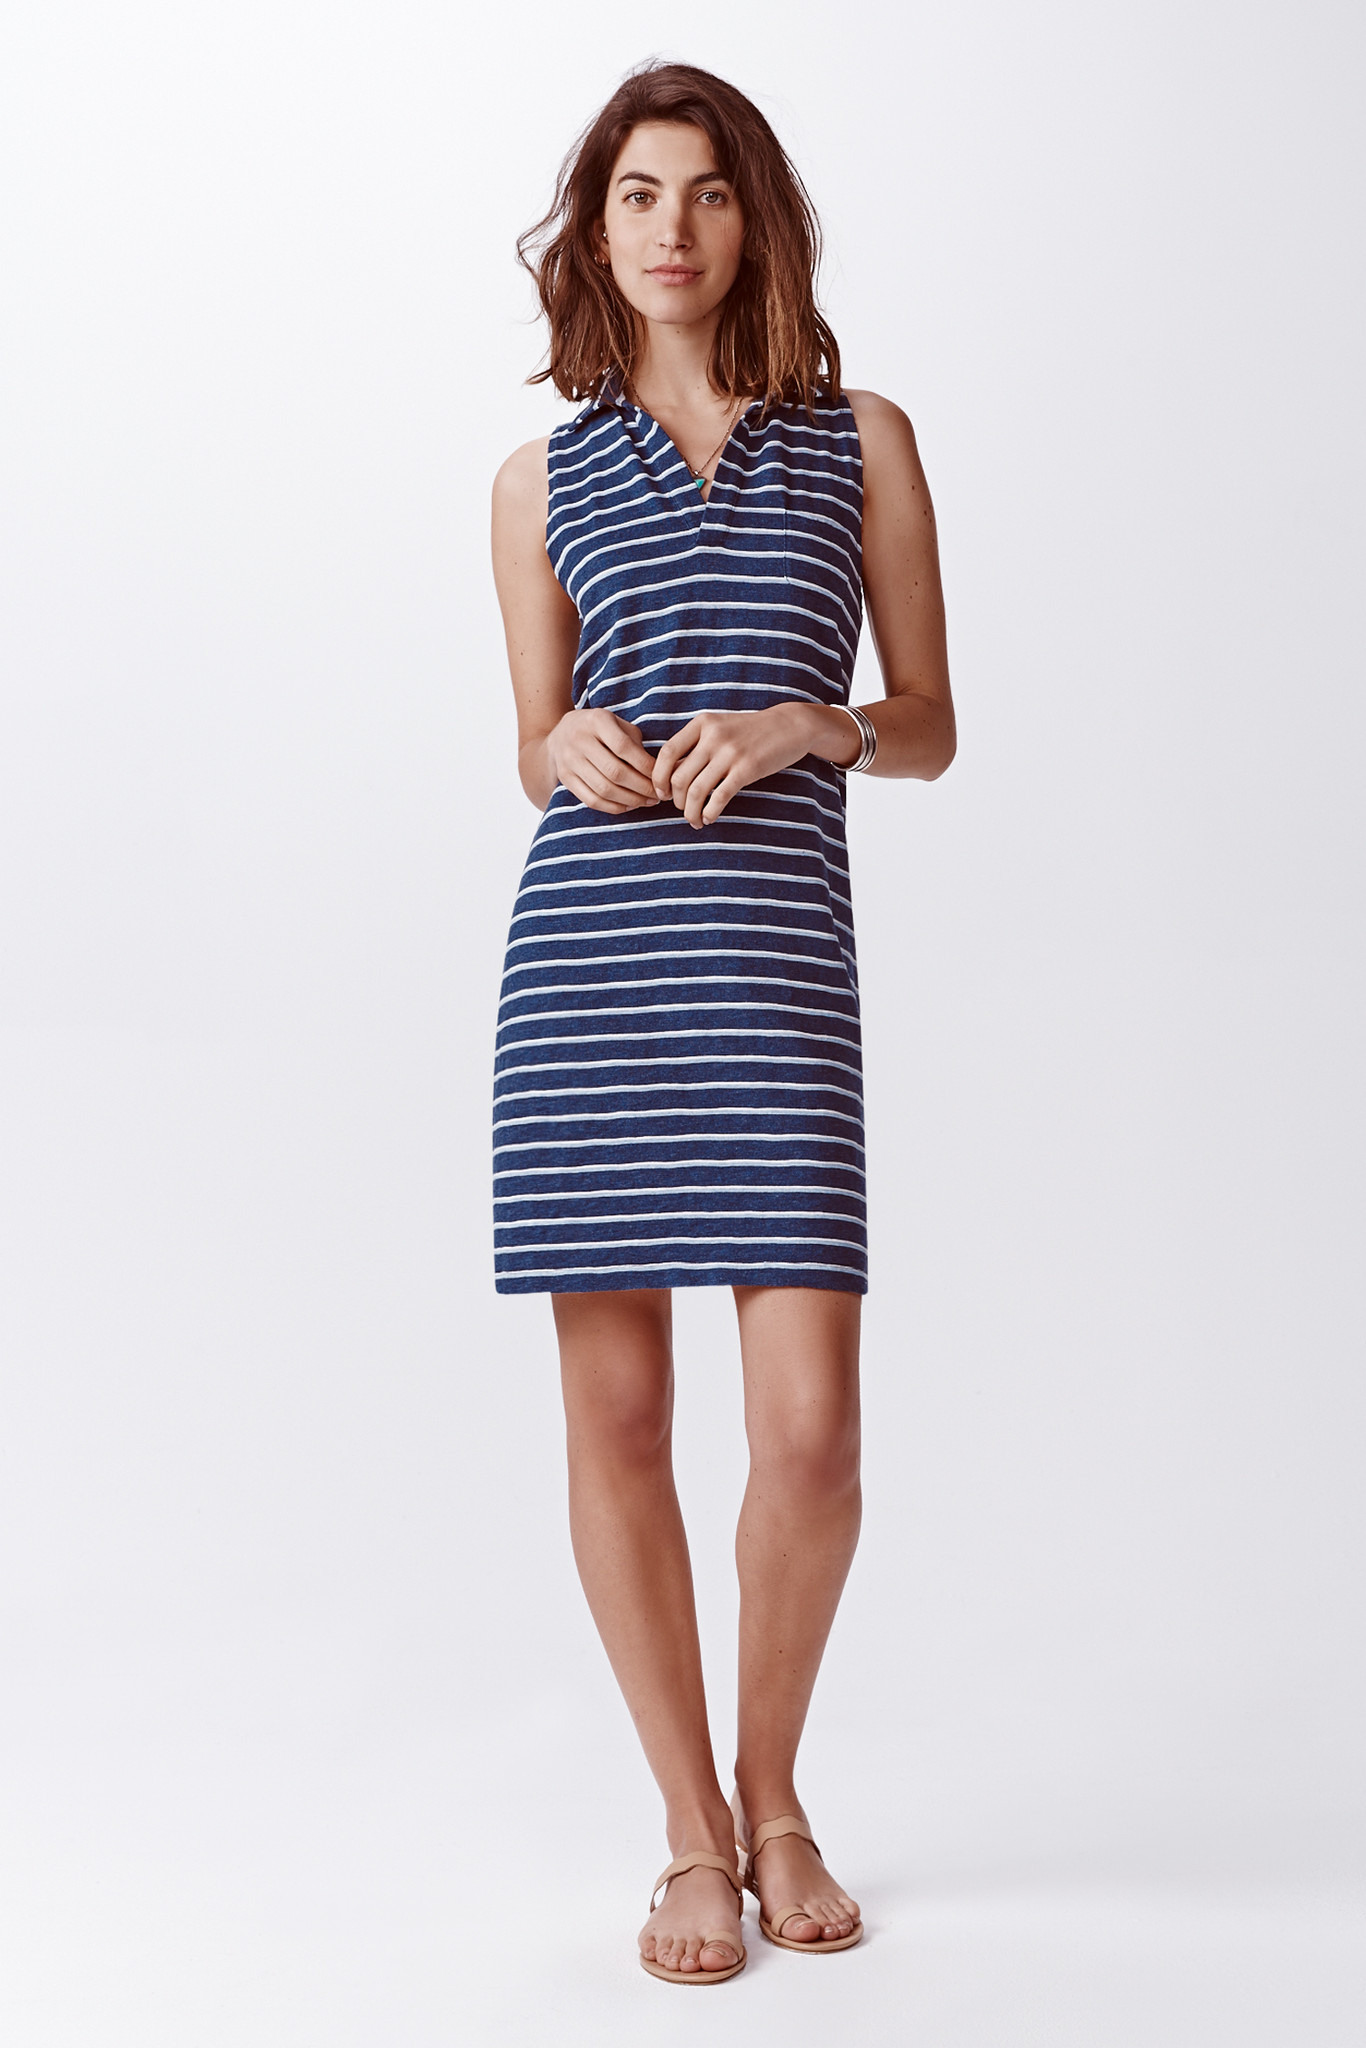 An embroidered signal flag and a bold striped pattern define the nautical inspiration of this striped polo dress. Shown with our Slider-Buckle Webbed Belt, which is sold 24software.ml: $